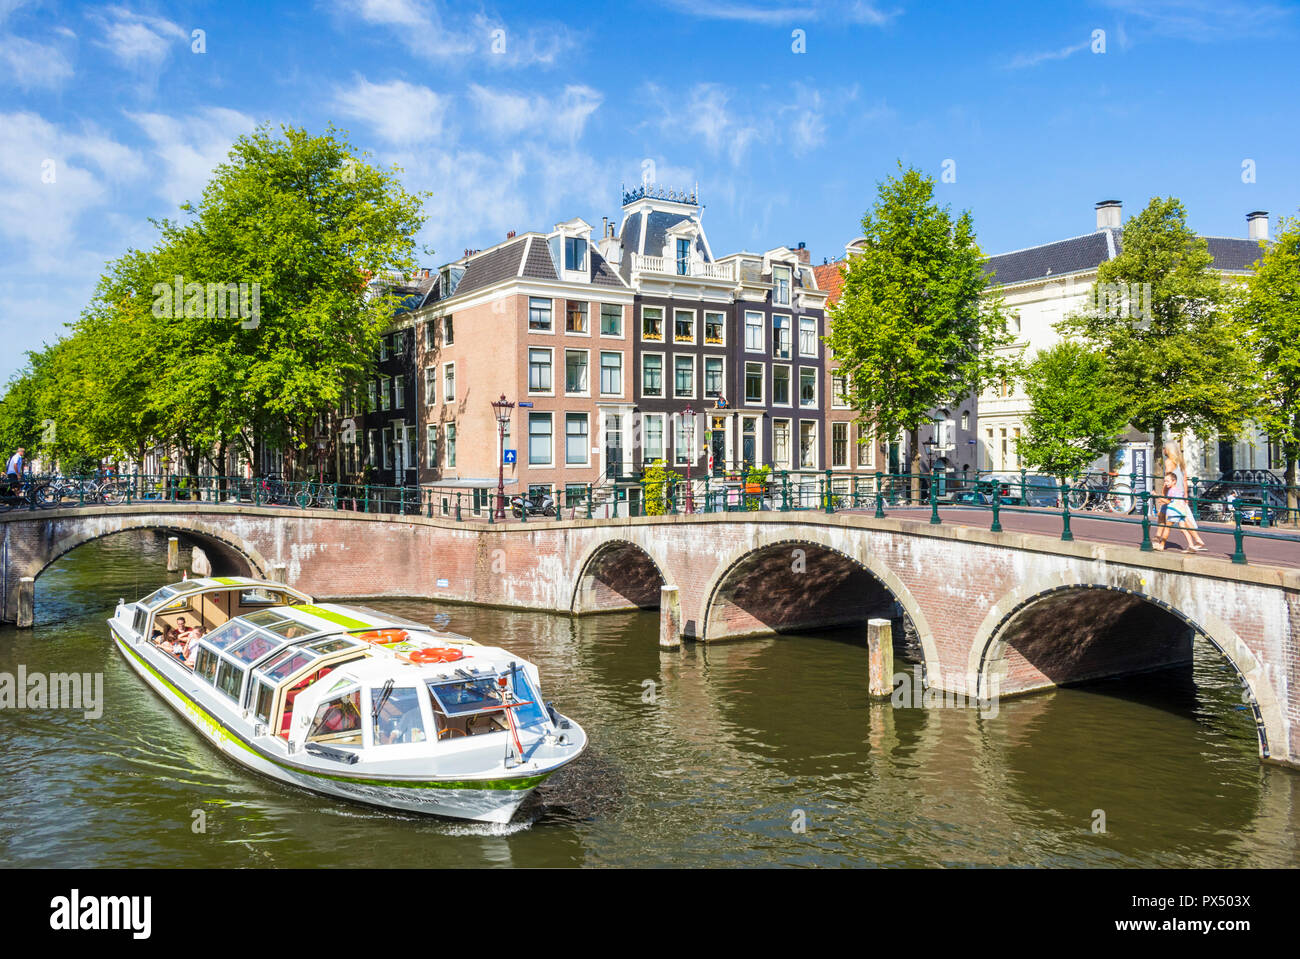 Amsterdam canal boat going under the bridges of Leidsegracht canal at the junction with Keizergracht canal Amsterdam Netherlands Holland EU Europe - Stock Image